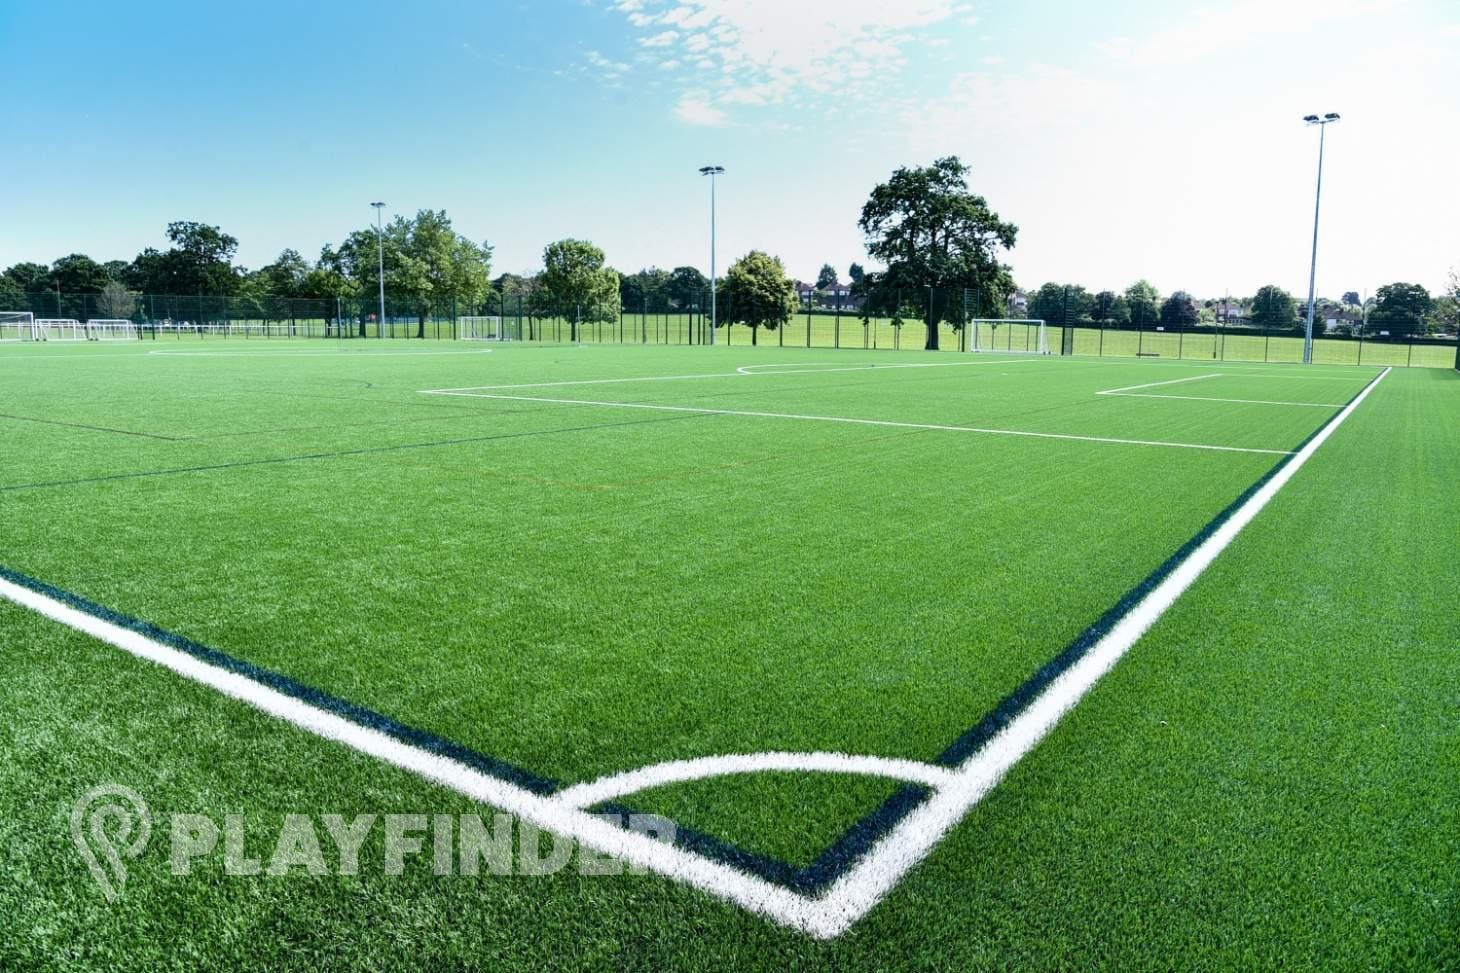 Barnet Lane 3G Pitch 5 a side | 3G Astroturf football pitch